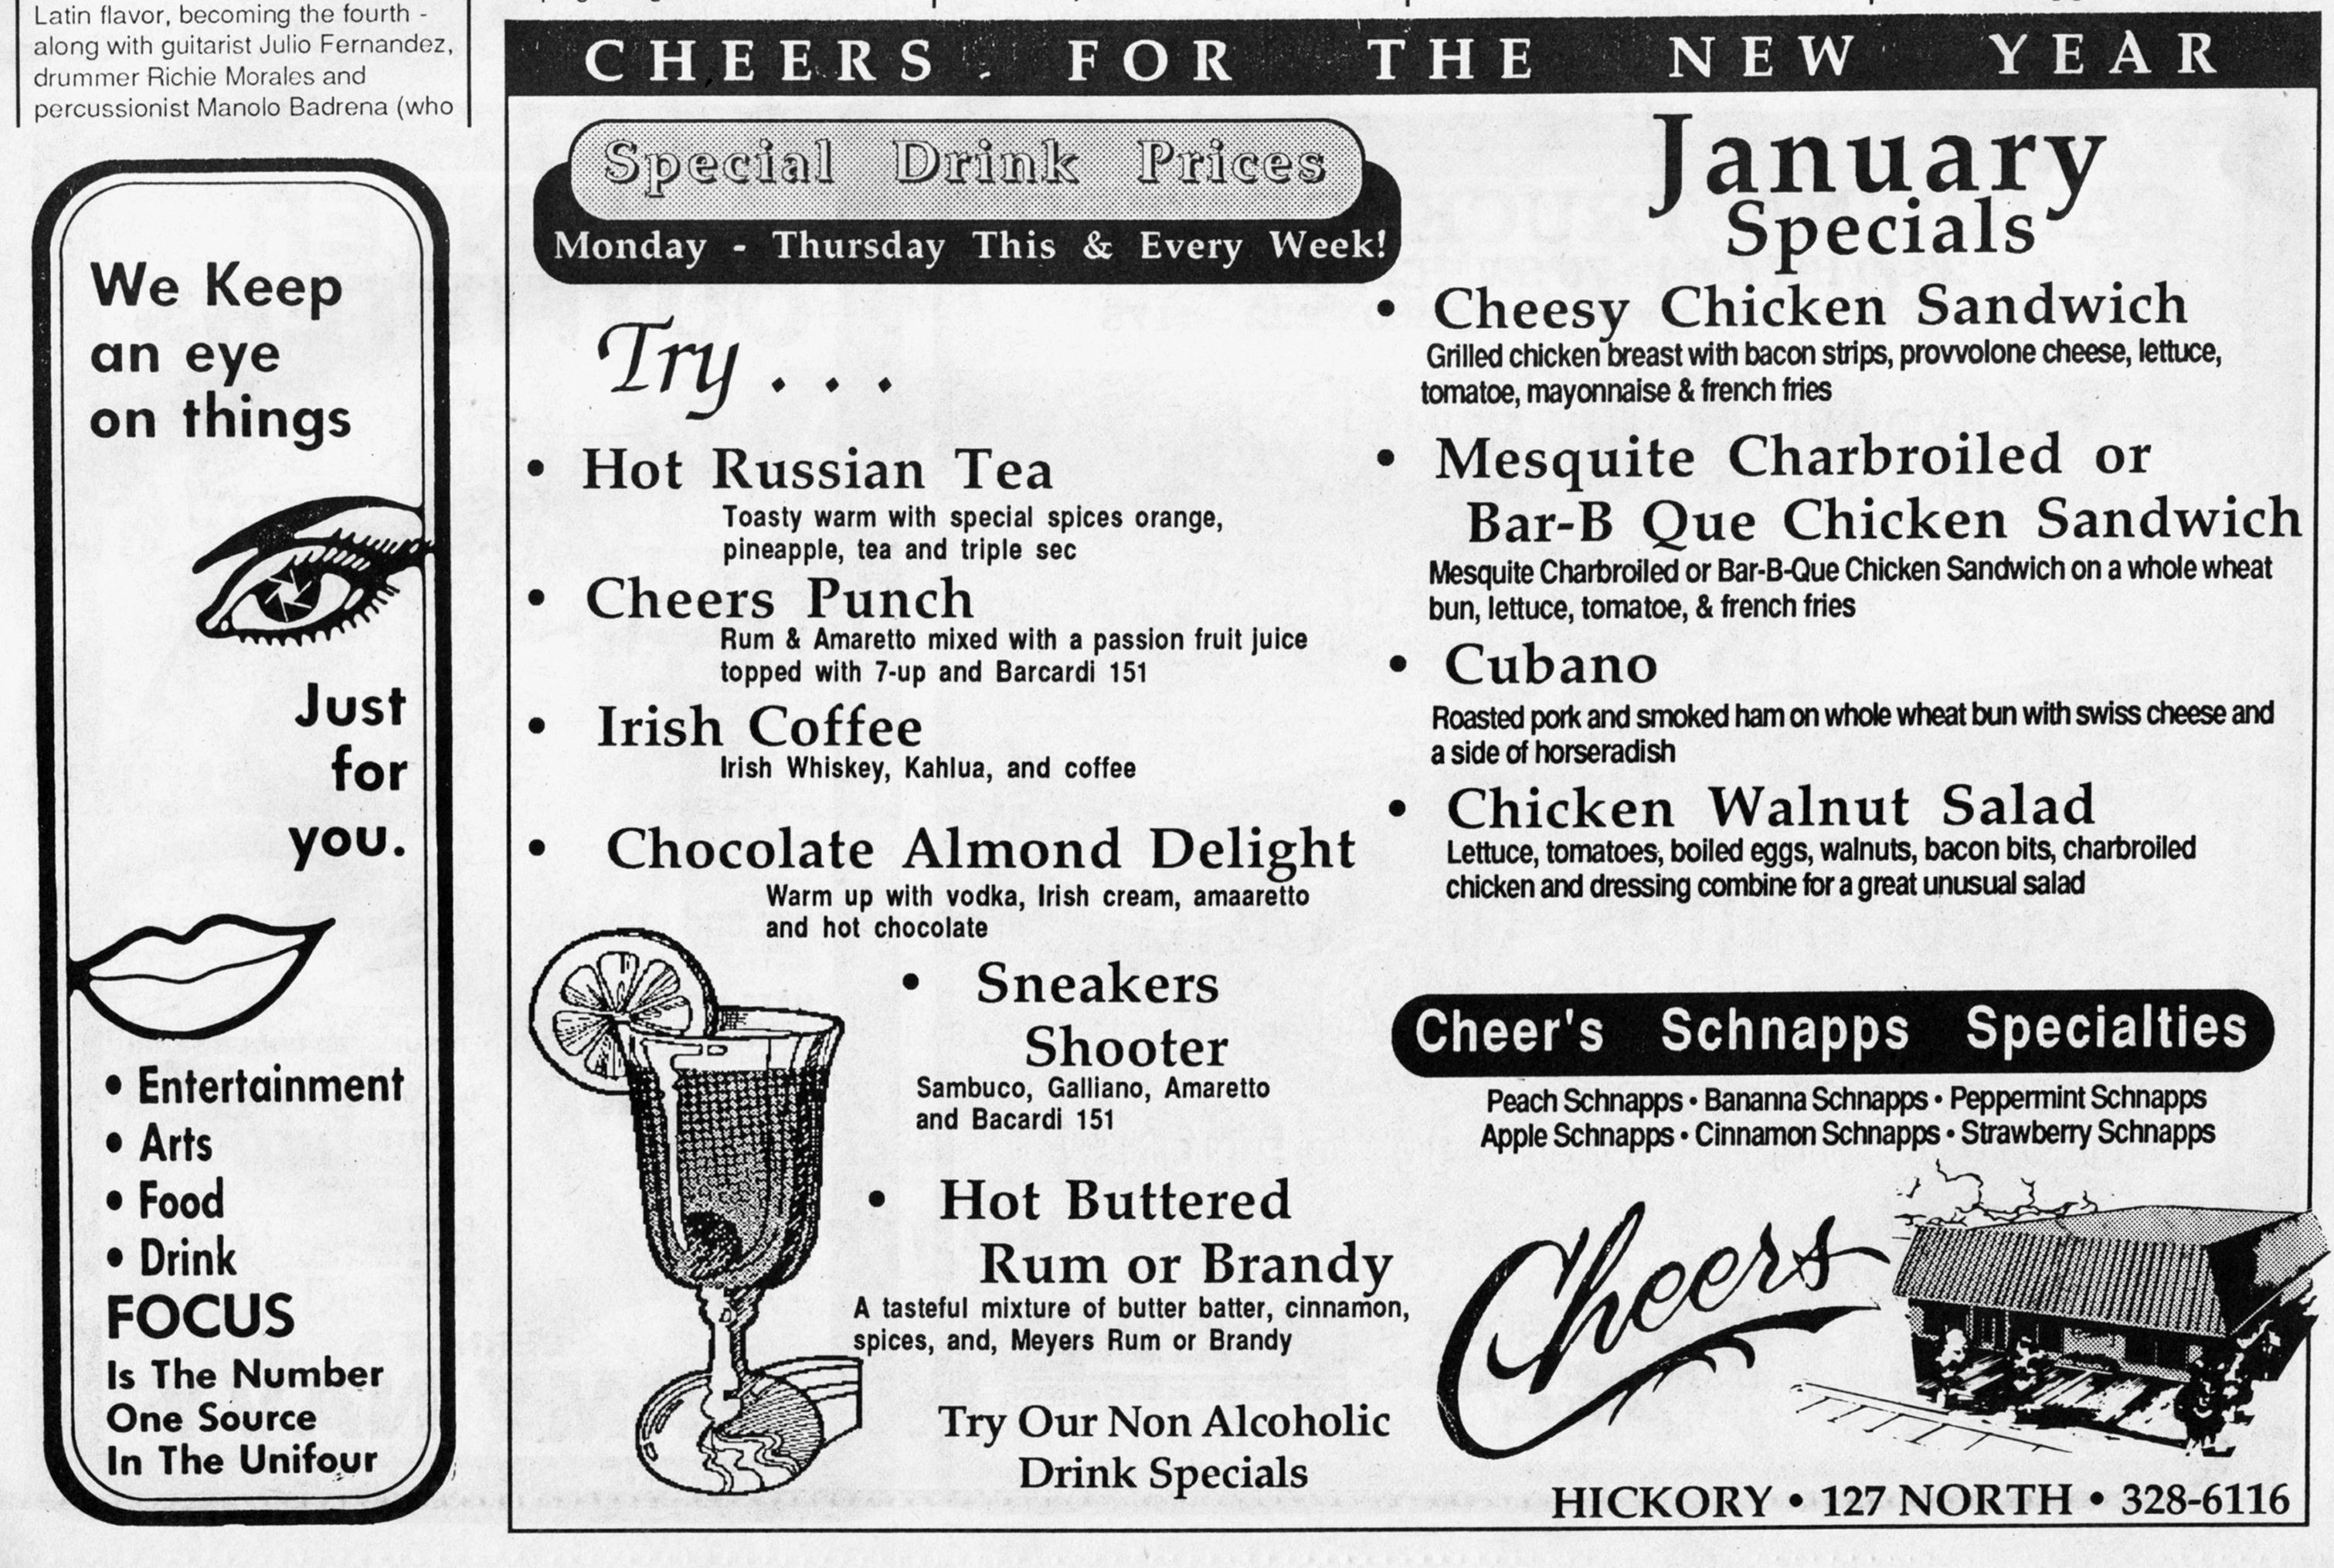 Advertisement for Cheers published January 7, 1988.